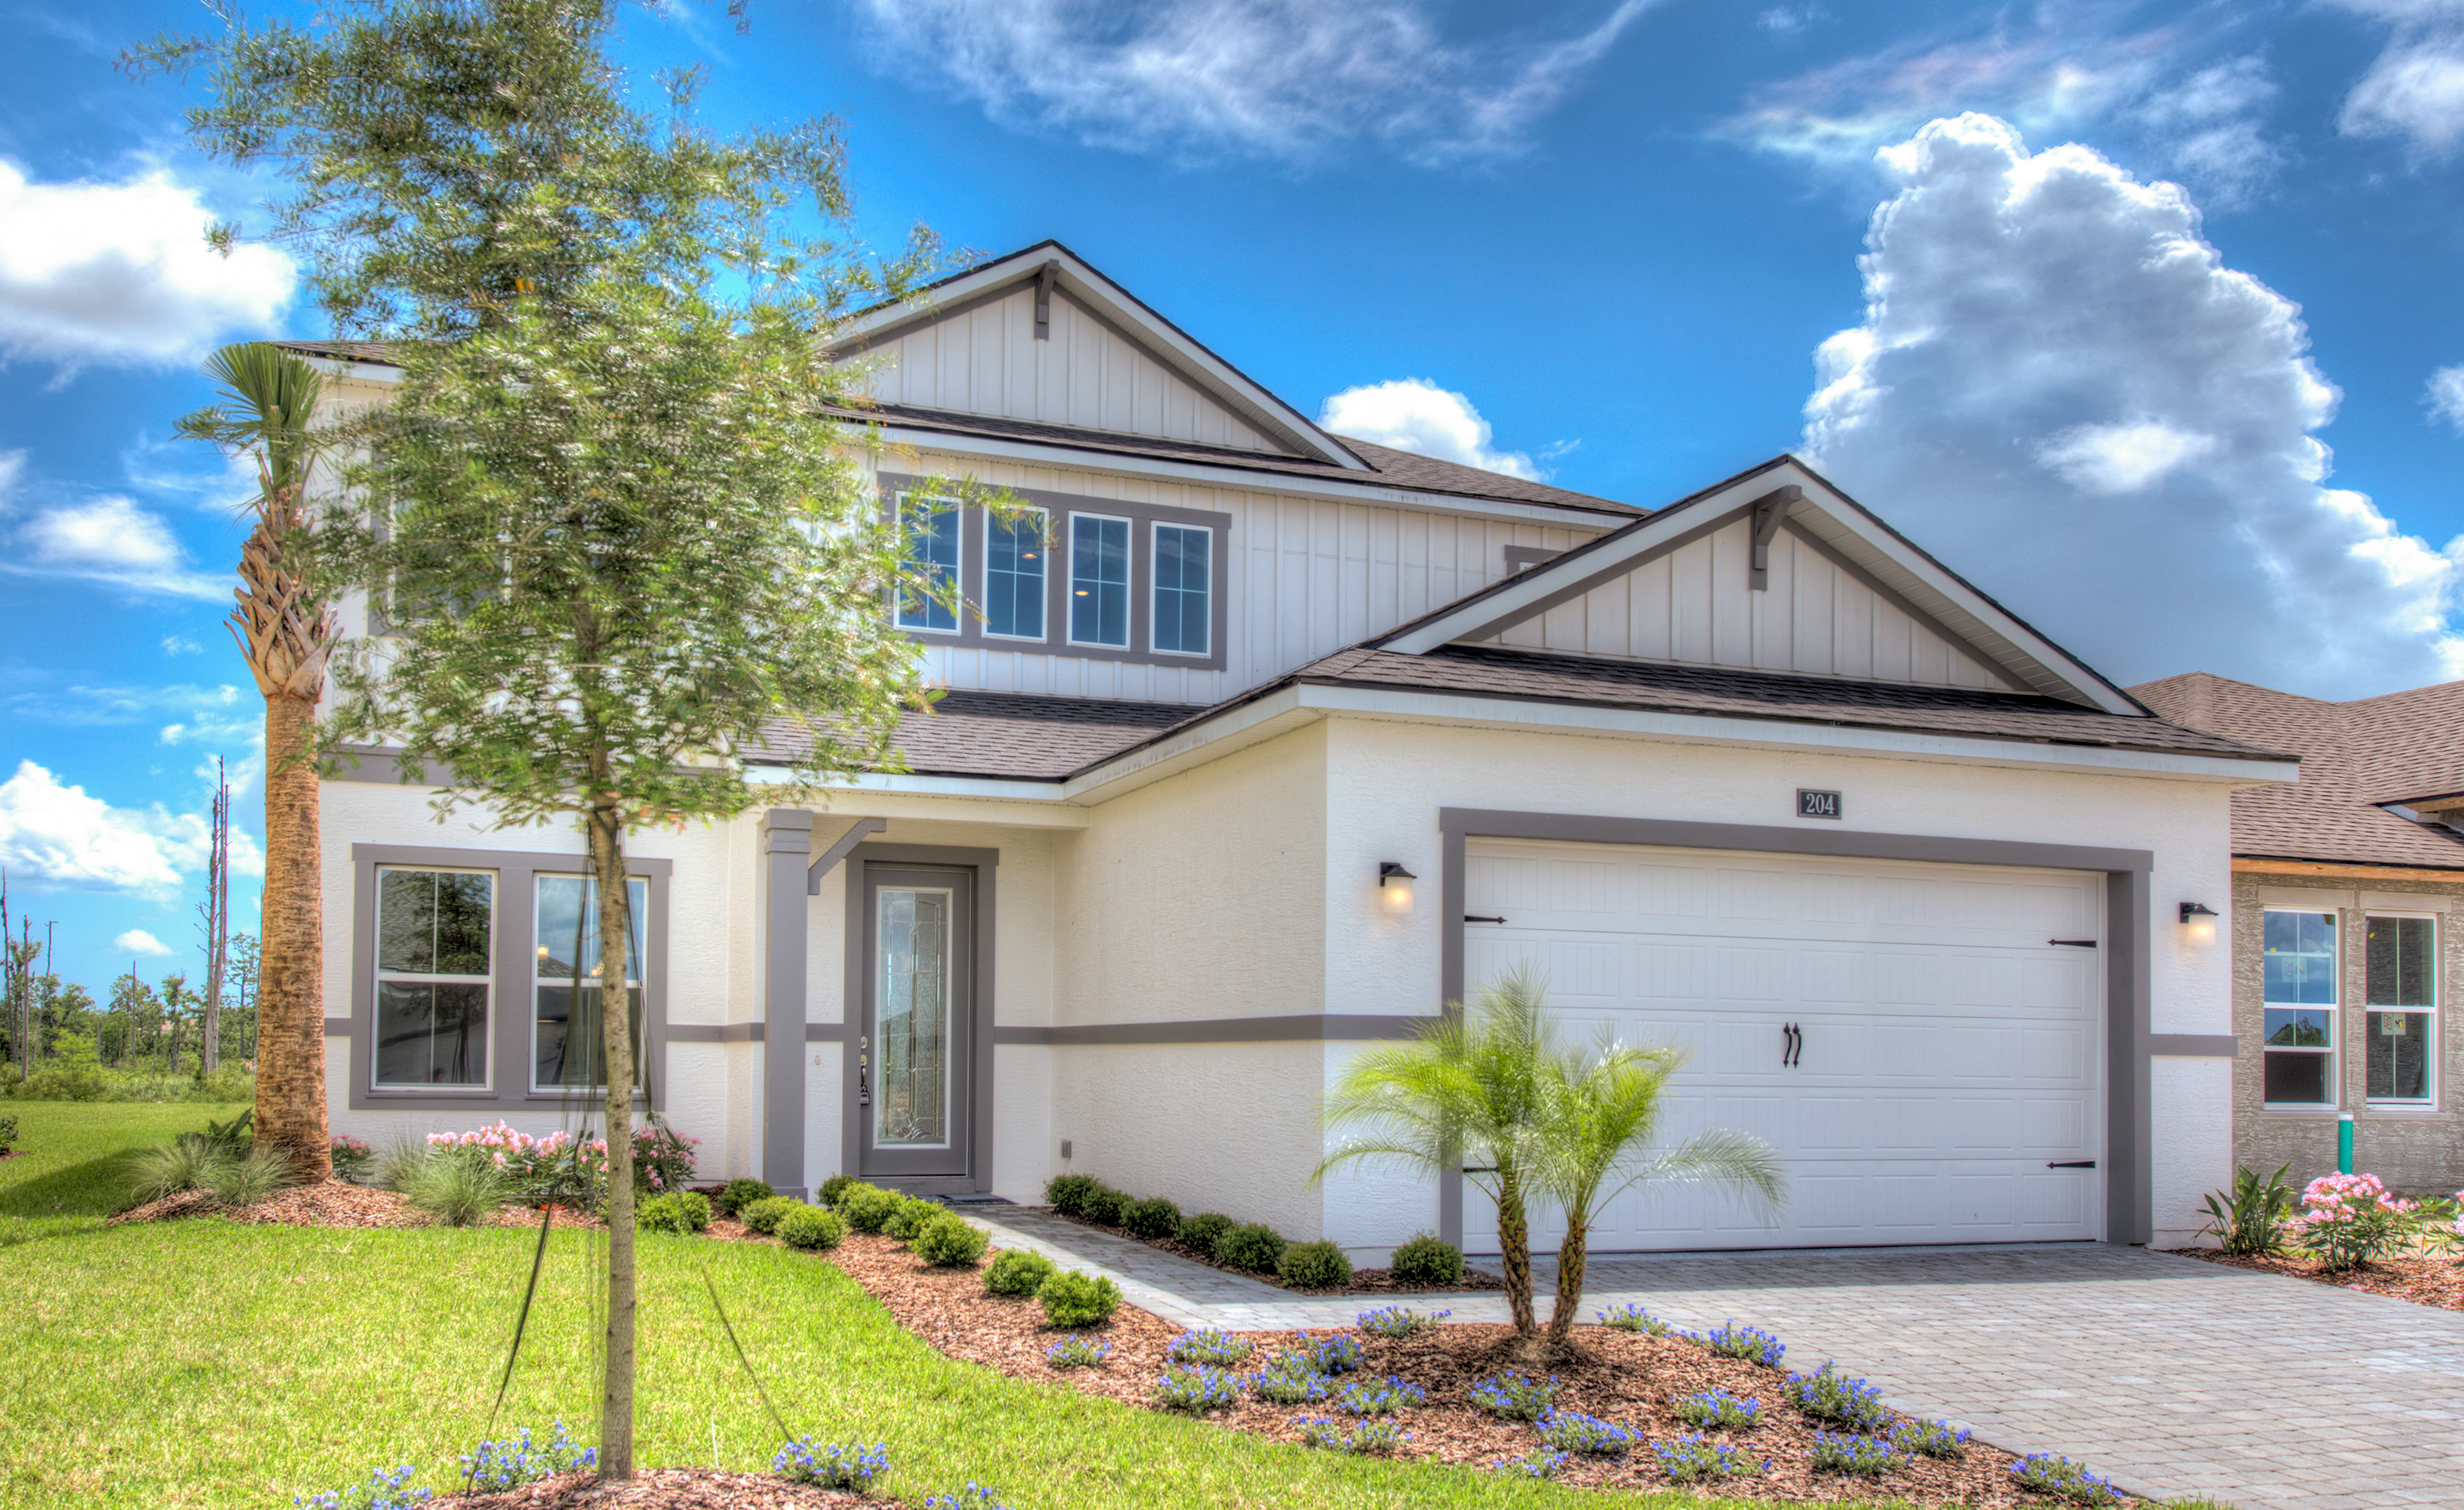 204 Azure Mist Way, Daytona Beach, FL 32124